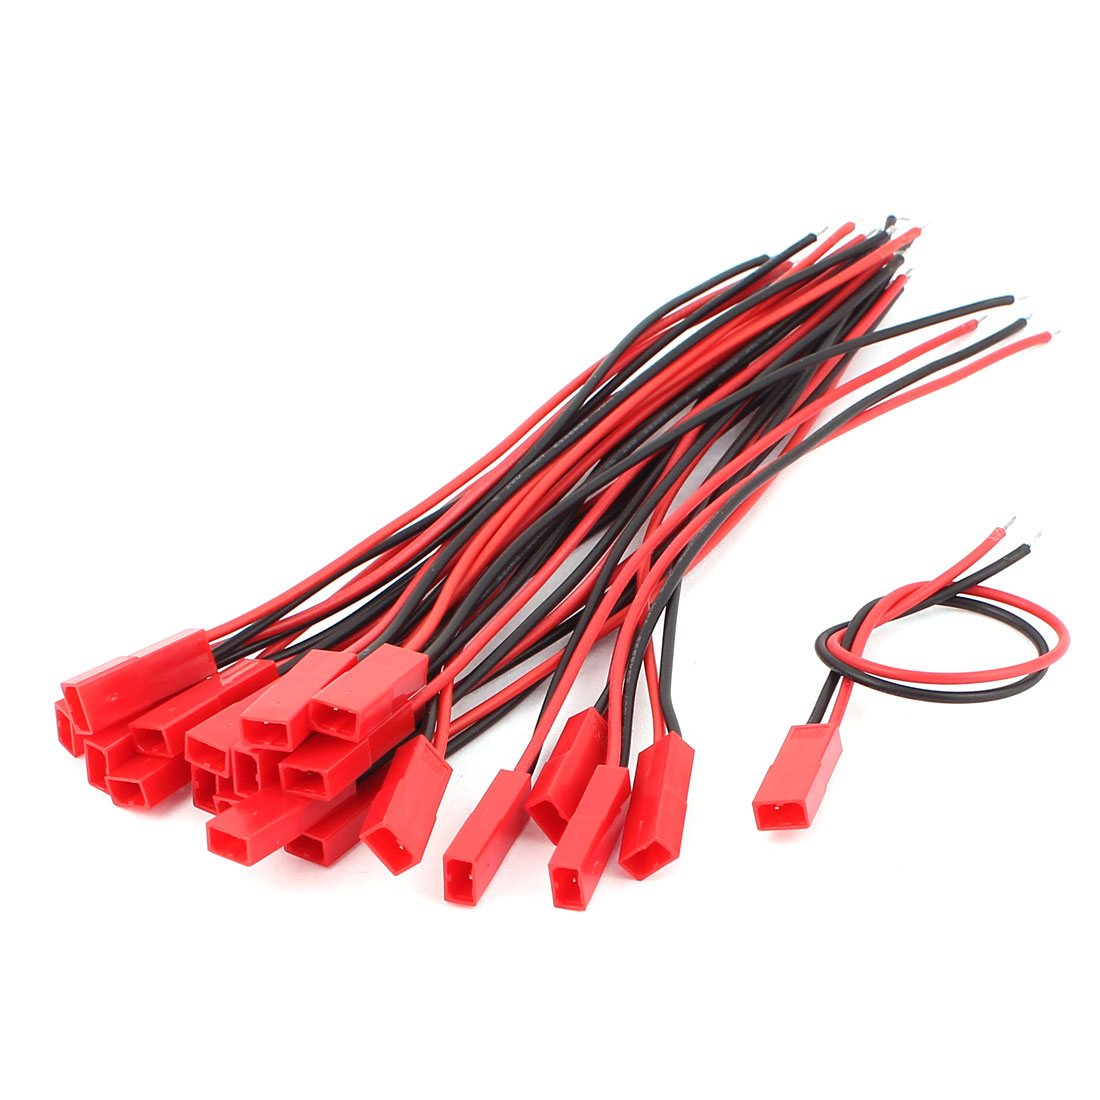 20Pcs JST RC Model Male Socket Connector Cable Wires